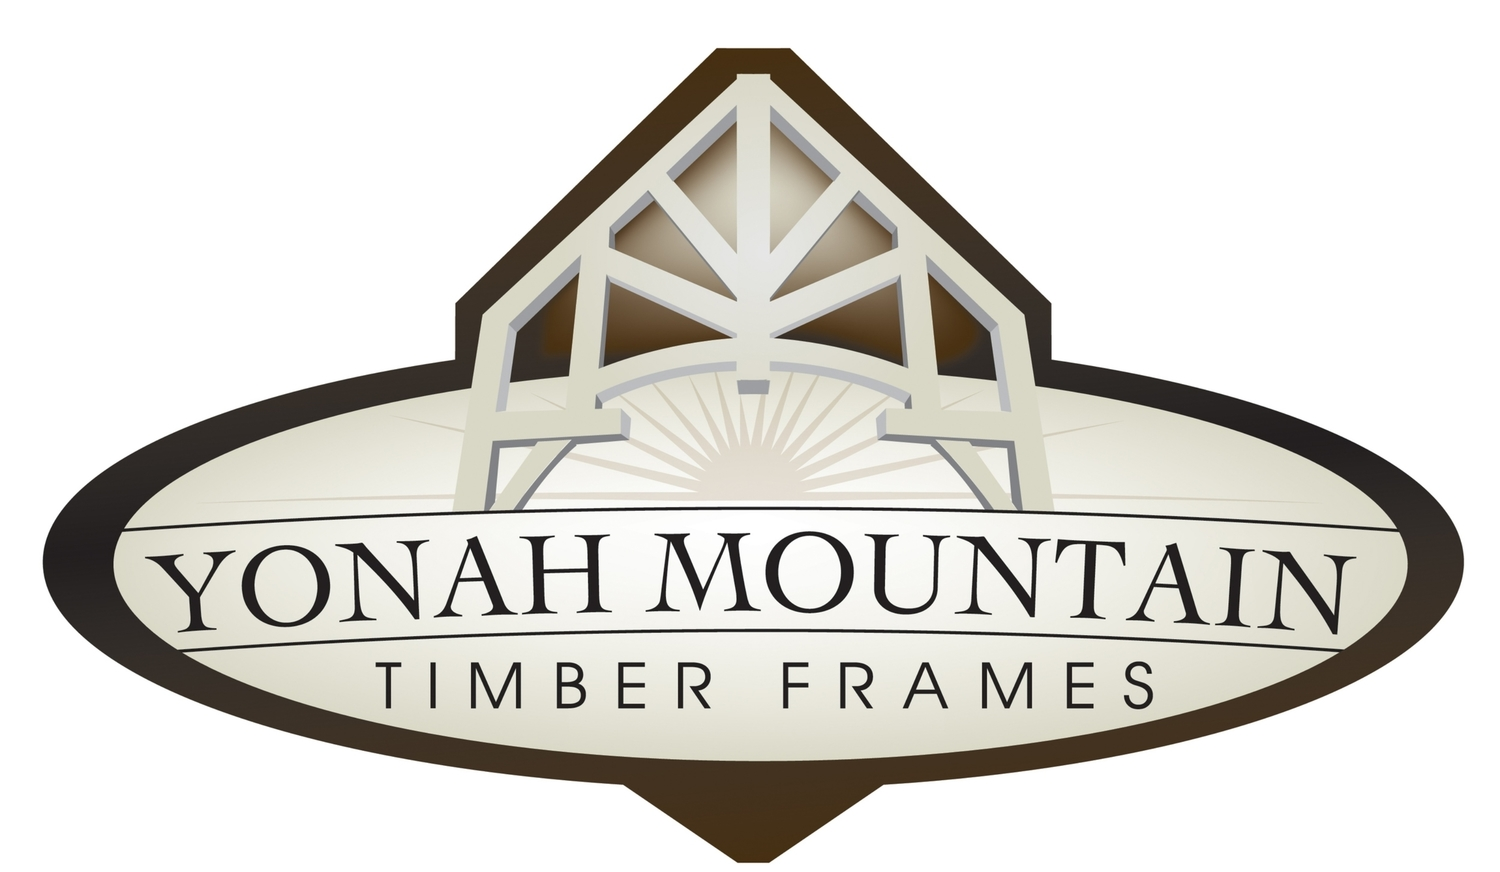 YONAH MOUNTAIN TIMBER FRAMES